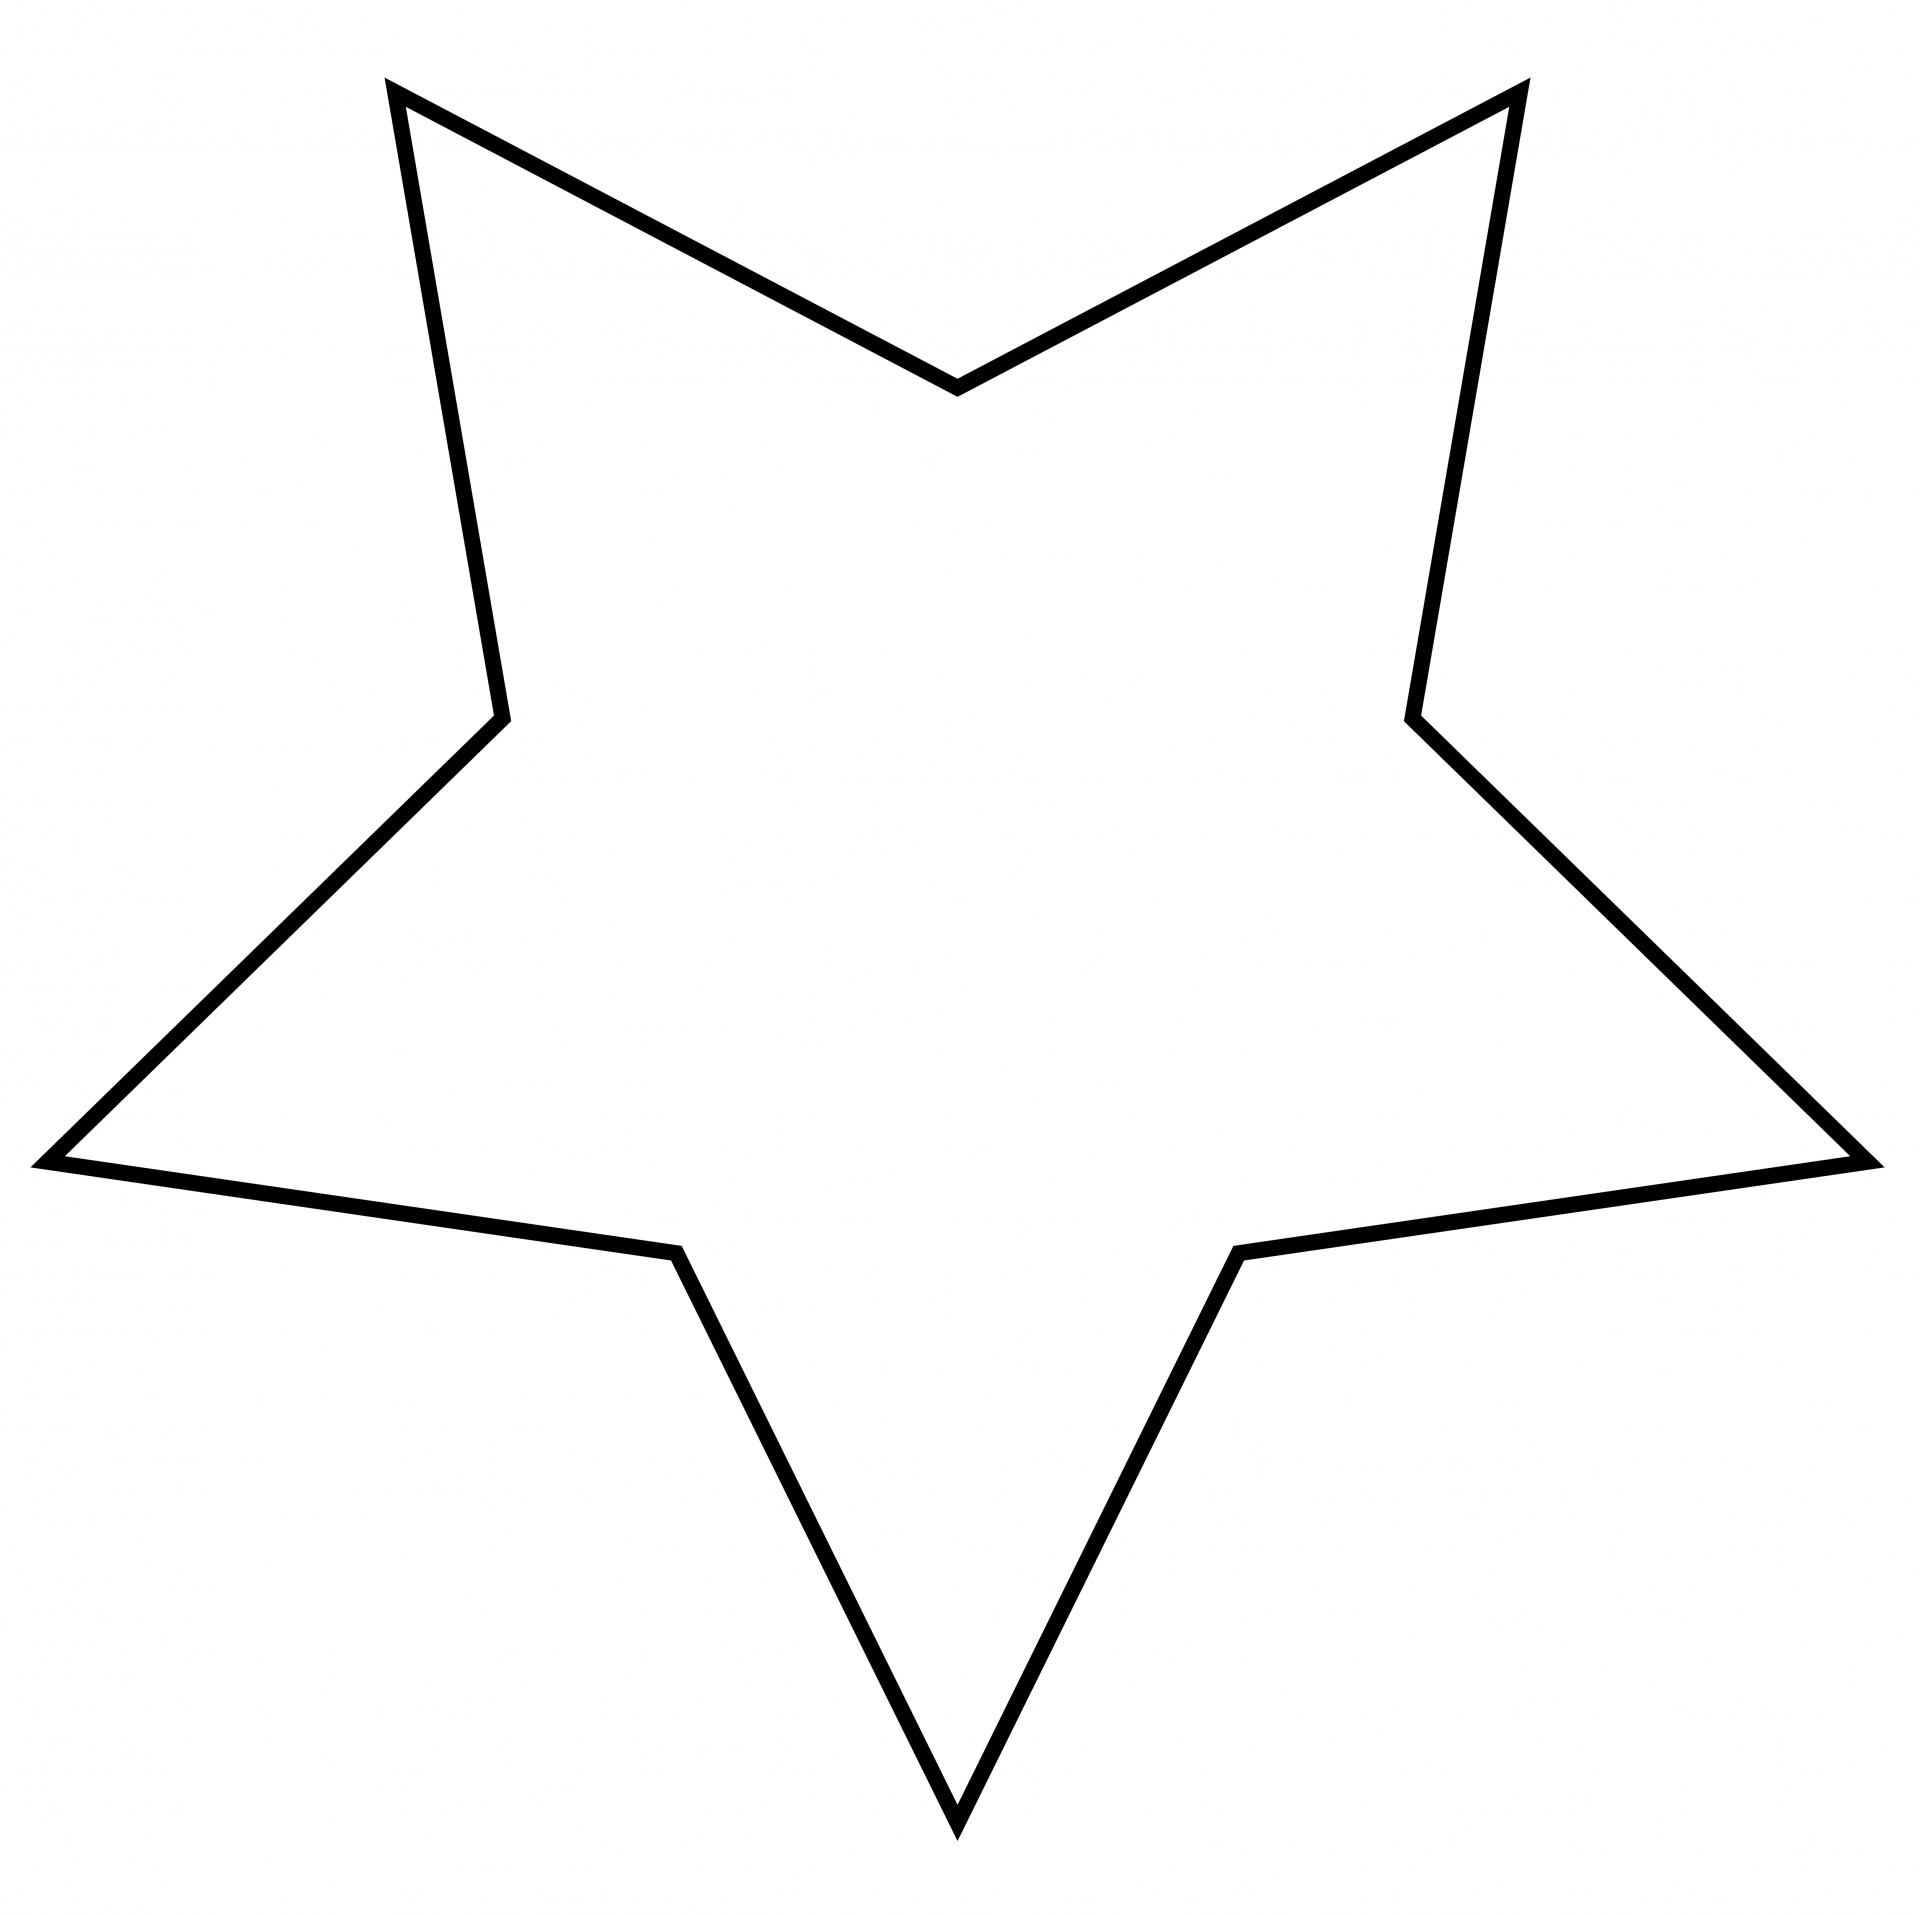 Outline clipart vector free download Star Outline Images - 55 cliparts vector free download